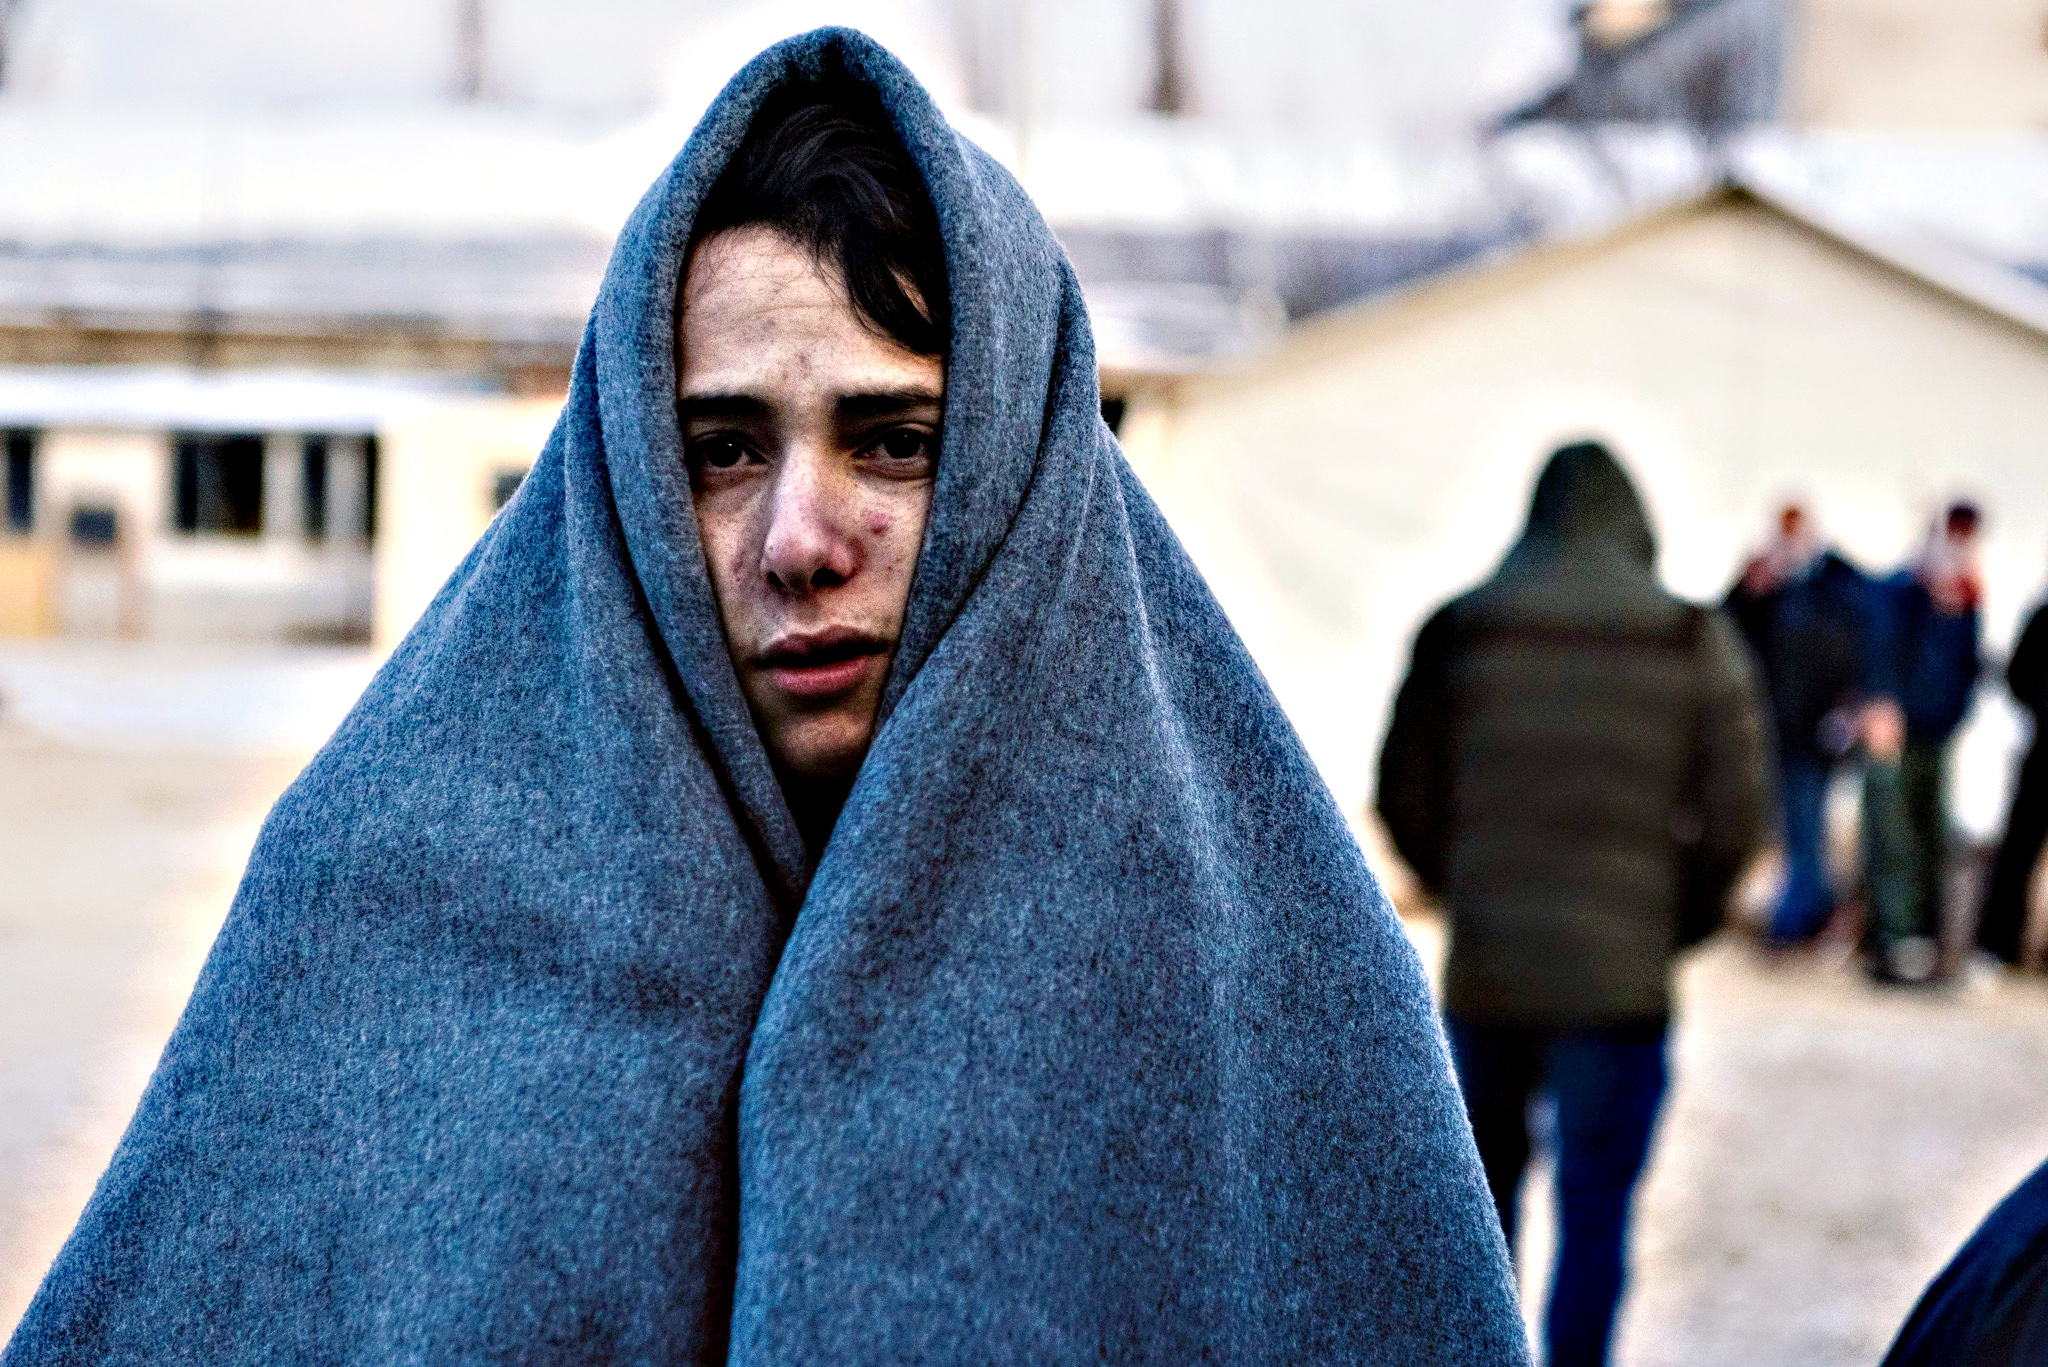 A migrant wrapped in a blanket to keep warm waits at a registration camp in southern Serbian town of Presevo on January 22, 2016, after crossing the Macedonian border.  As refugees continued to flow from Greece through the Balkans on their way to western Europe, aid workers sounded alarms over inadequate shelter from the current freezing temperatures and snowy conditions, particularly for children.